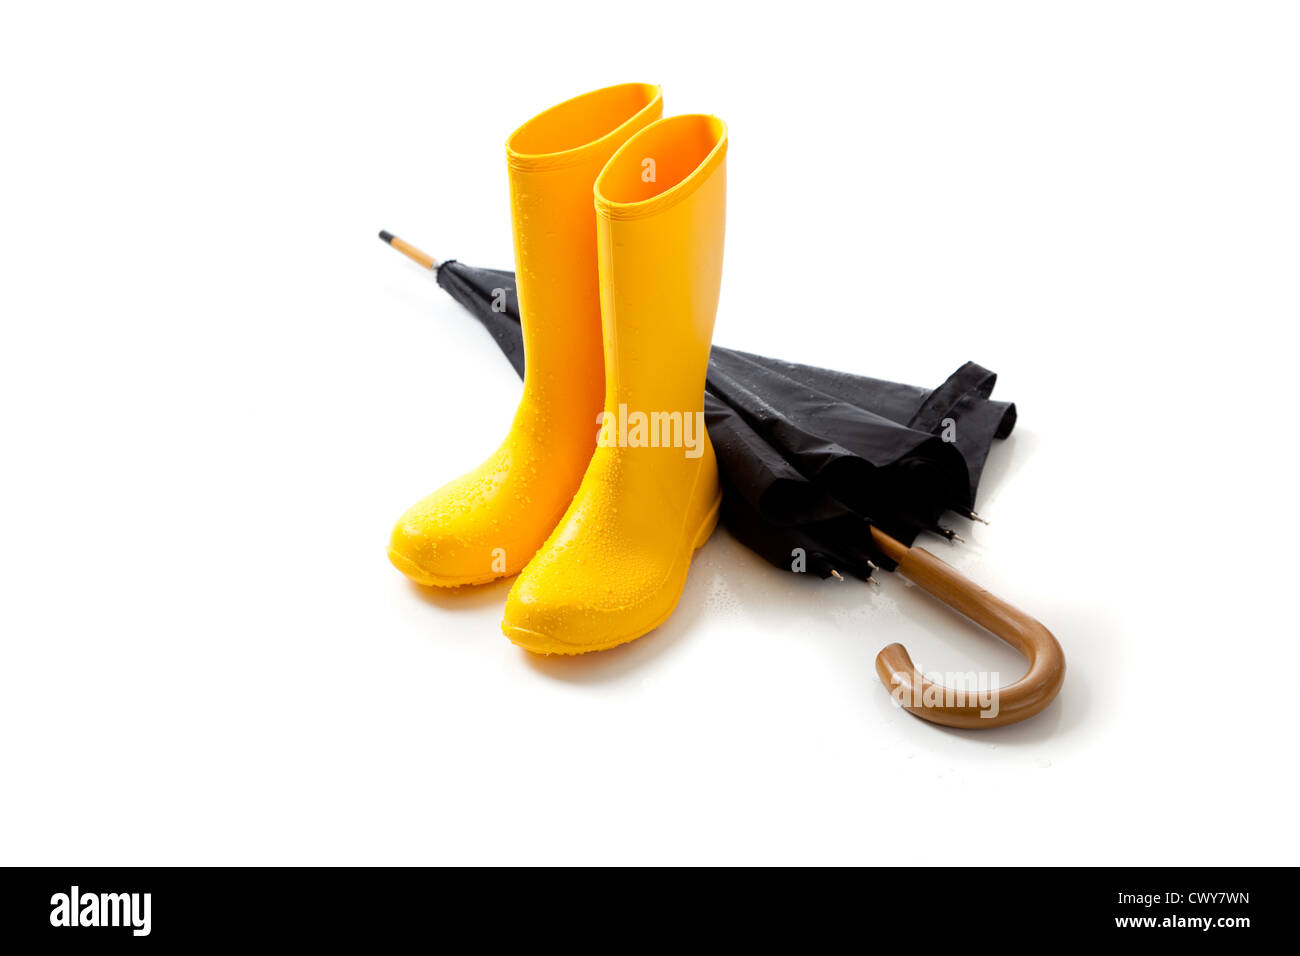 A pair of yellow rain boots and a black umbrella on a white background with copy space - Stock Image